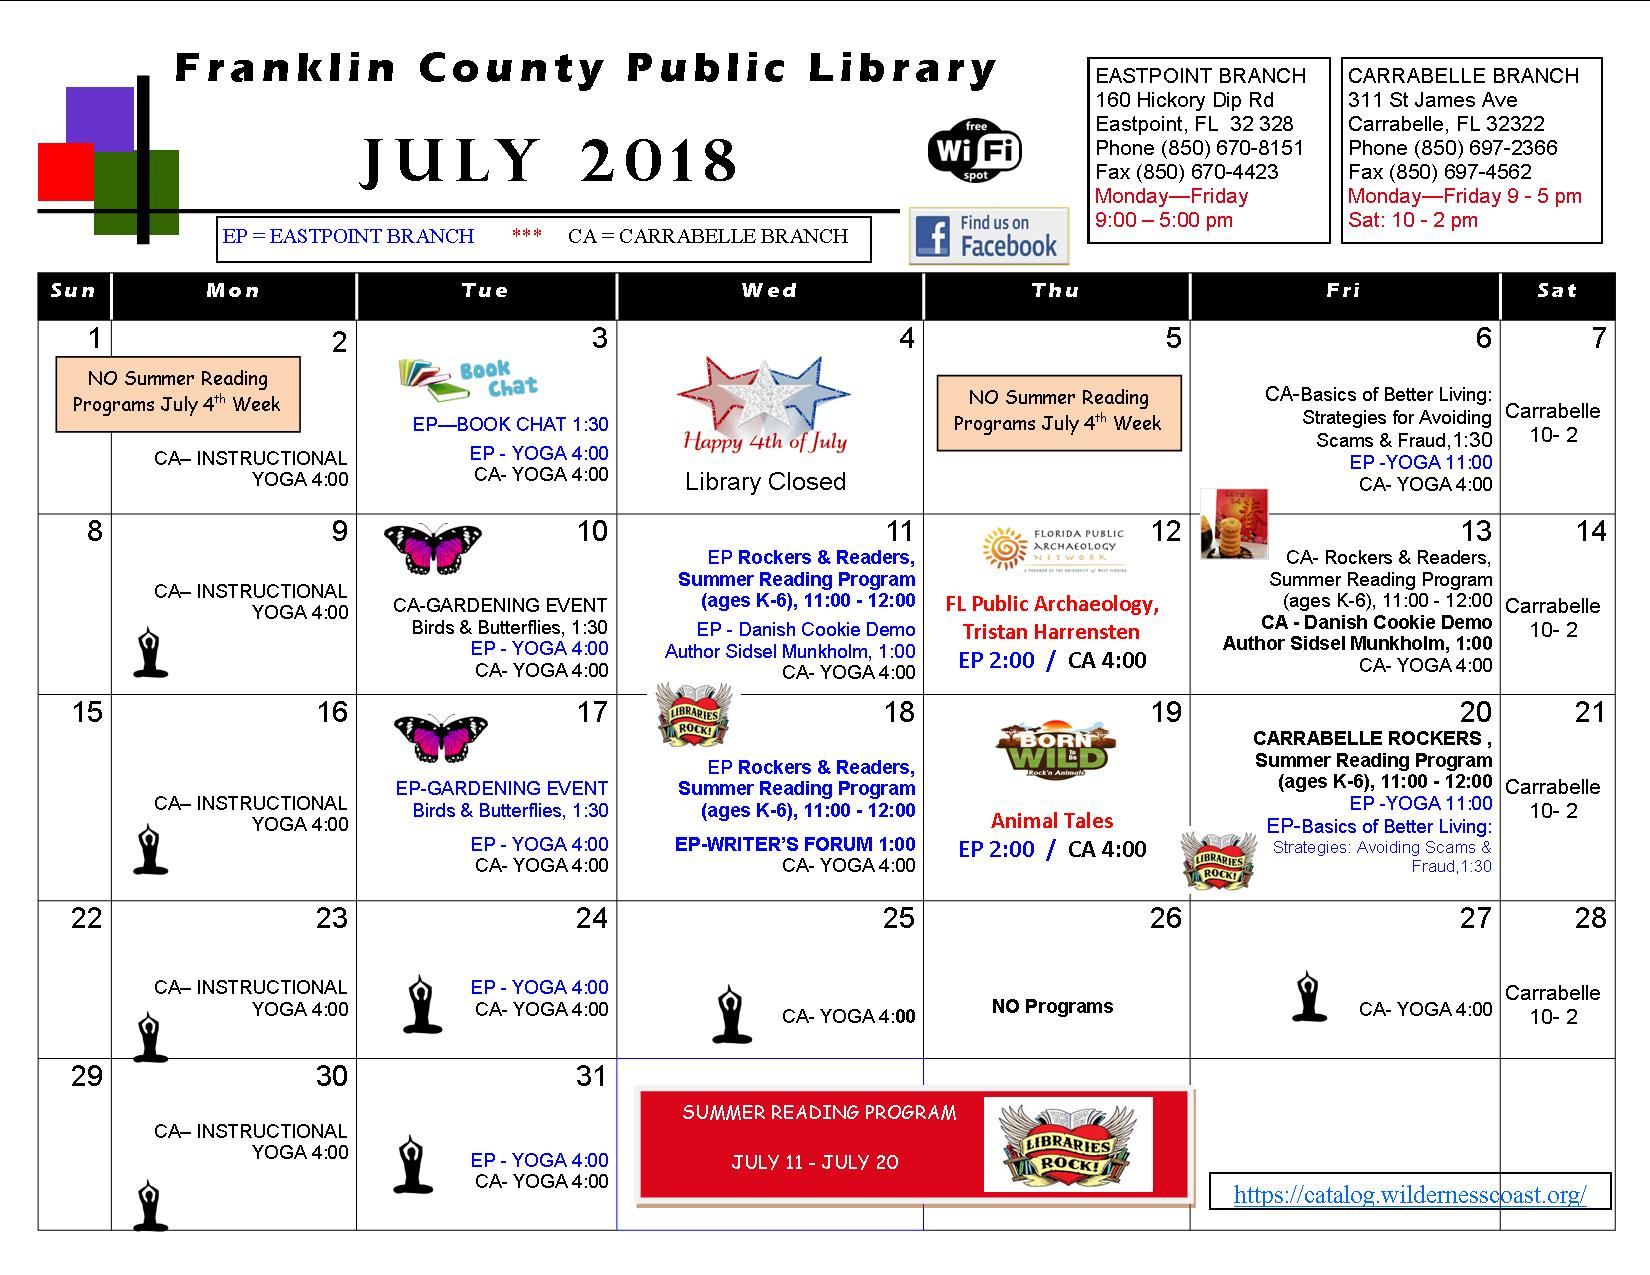 fcpl july 2018 calendar of events